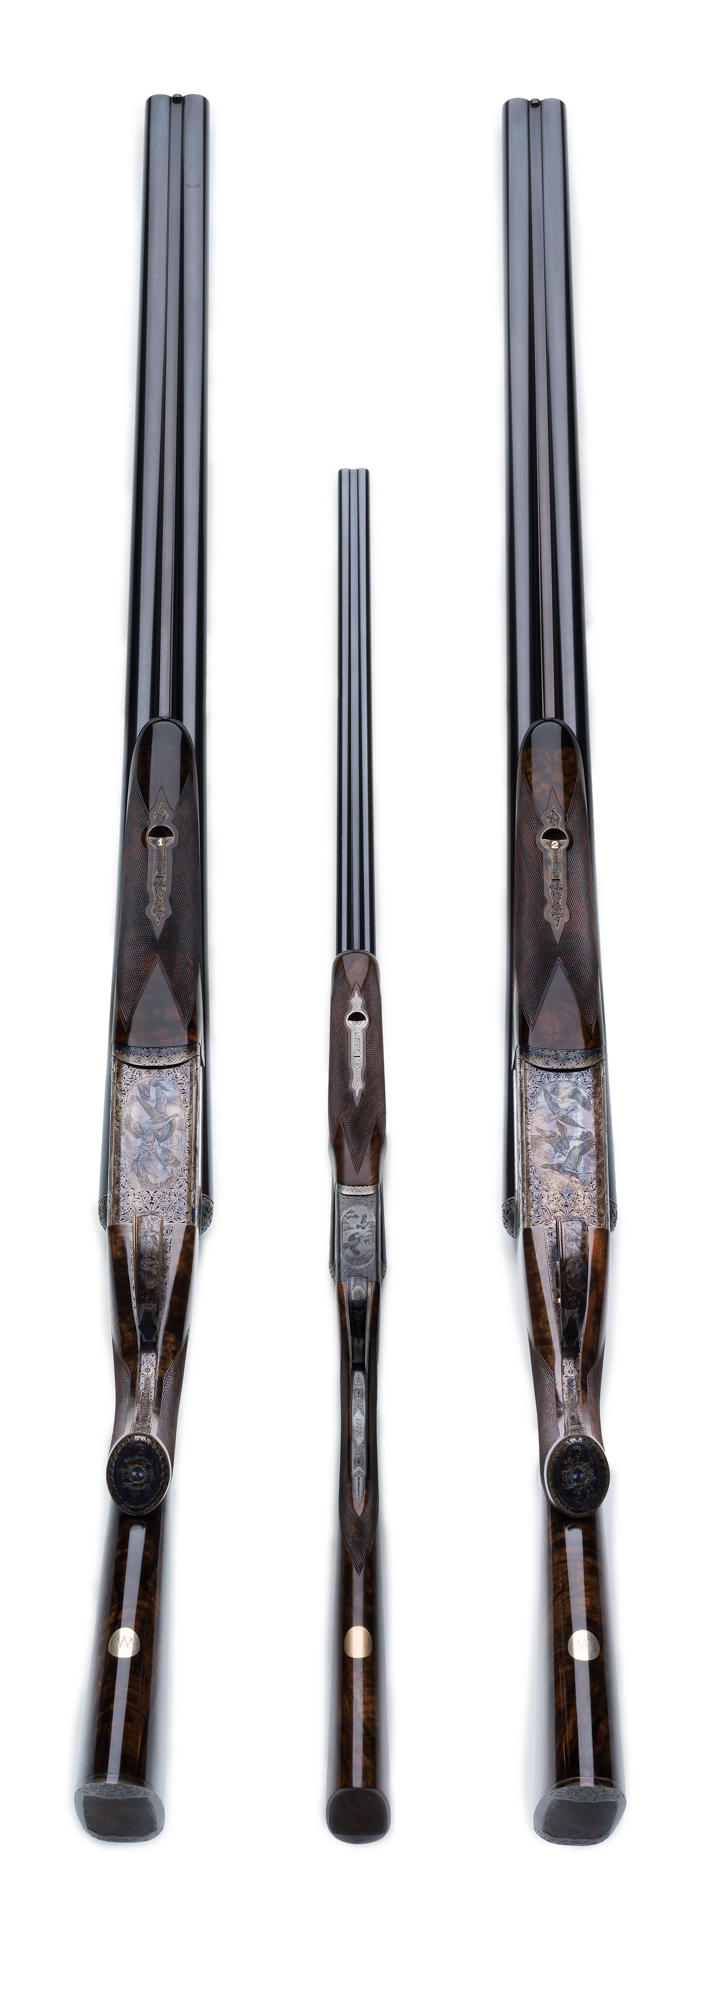 Westley Richards 4g Pair with .410